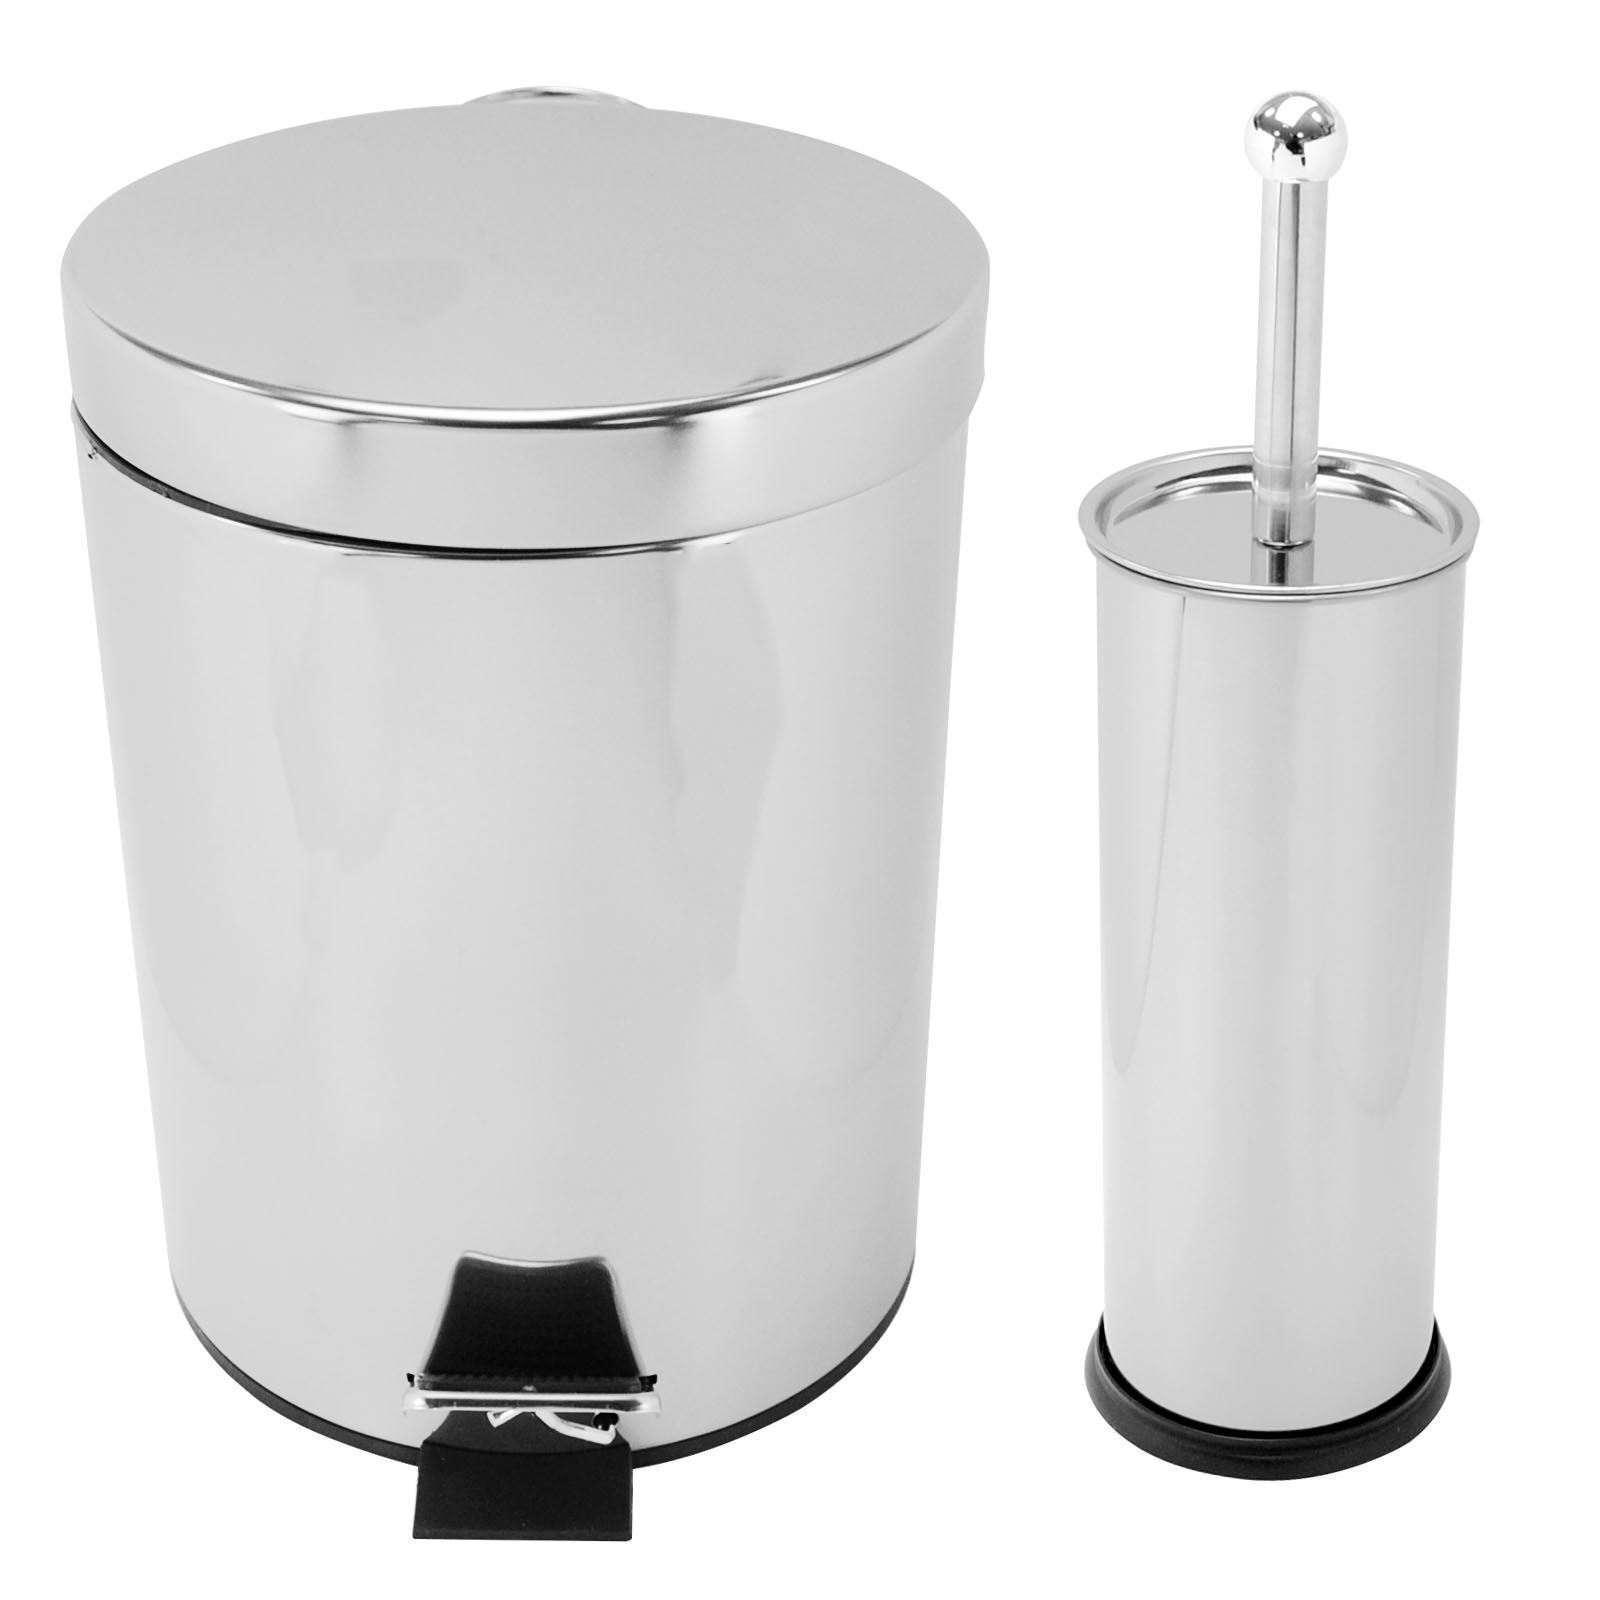 Stainless steel 5l toilet bin and brush set step foot for Bathroom bin set